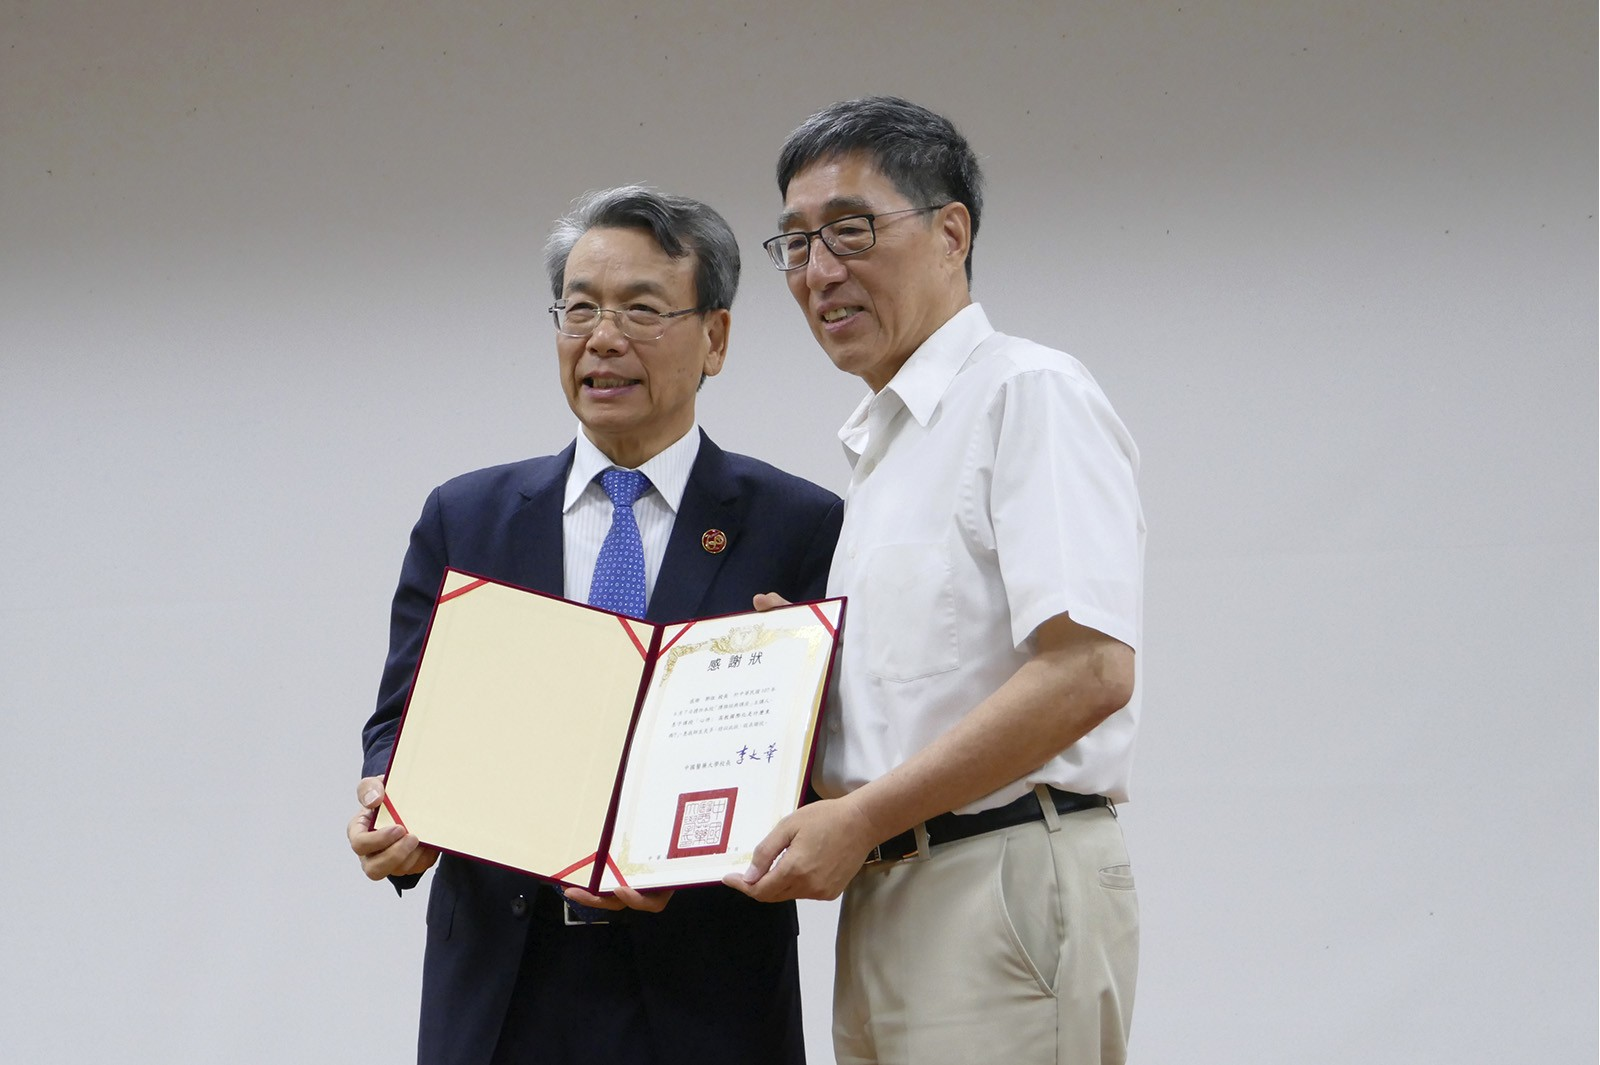 Professor Kuo (right) receives a certificate of appreciation from Professor Lee Wen-hwa, President of CMU.